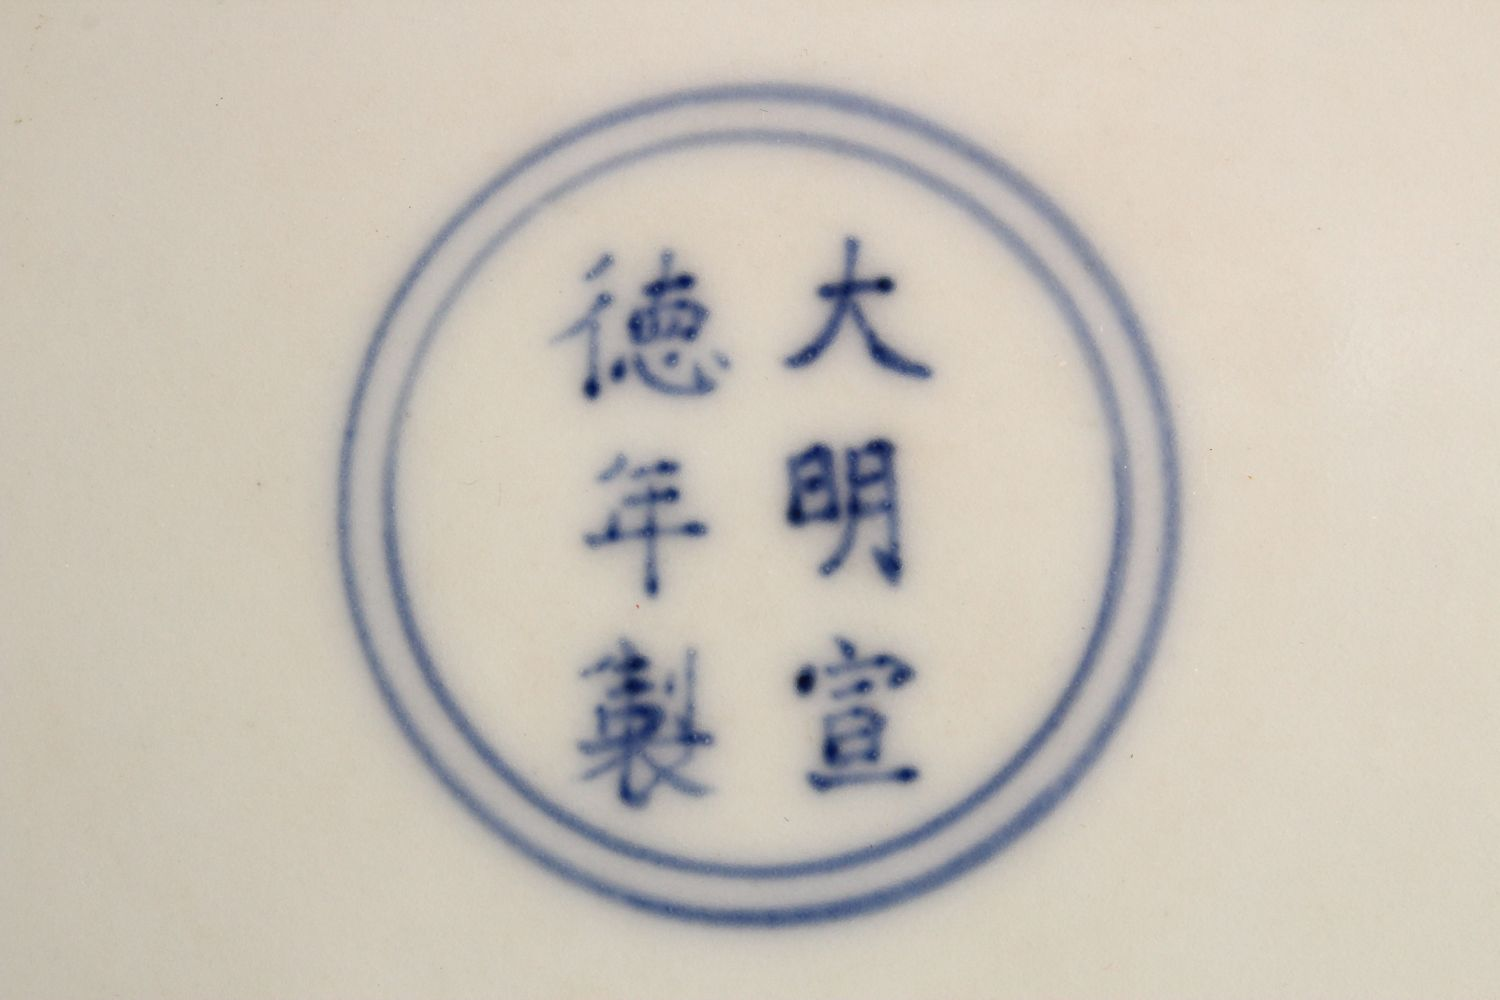 A GOOD CHINESE BLUE AND WHITE PORCELAIN BOX AND COVER, the cover decorated with birds on a peach - Image 5 of 5